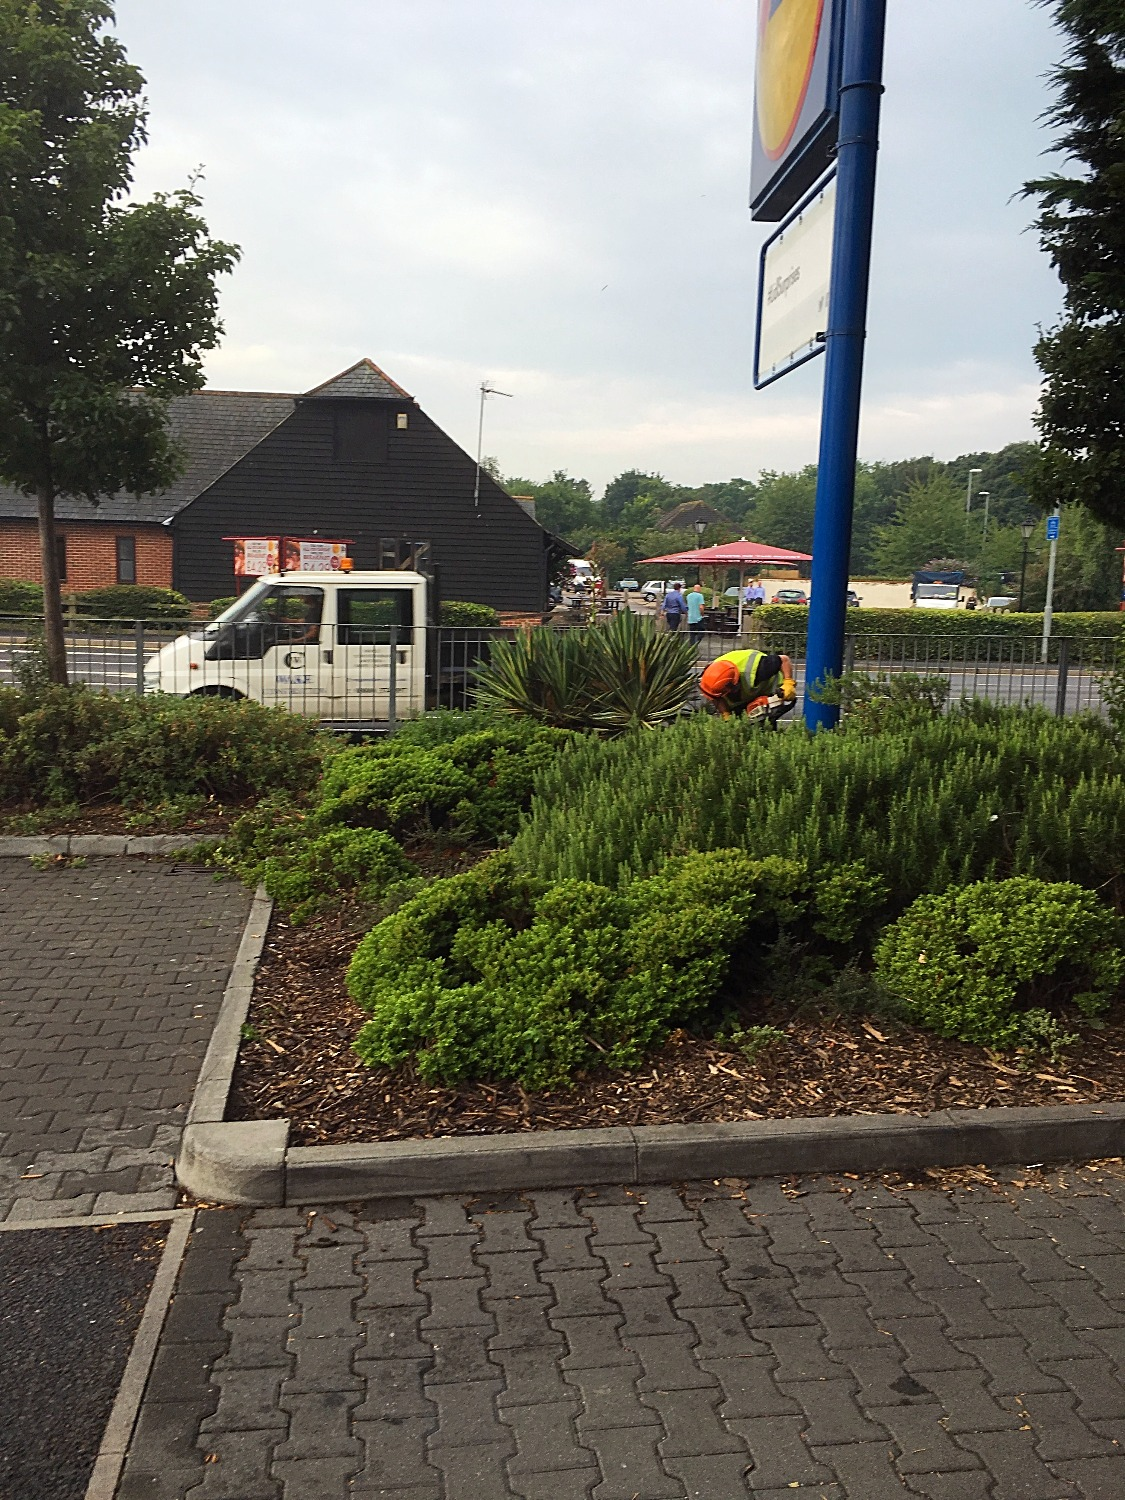 Greenscape working for Lidl